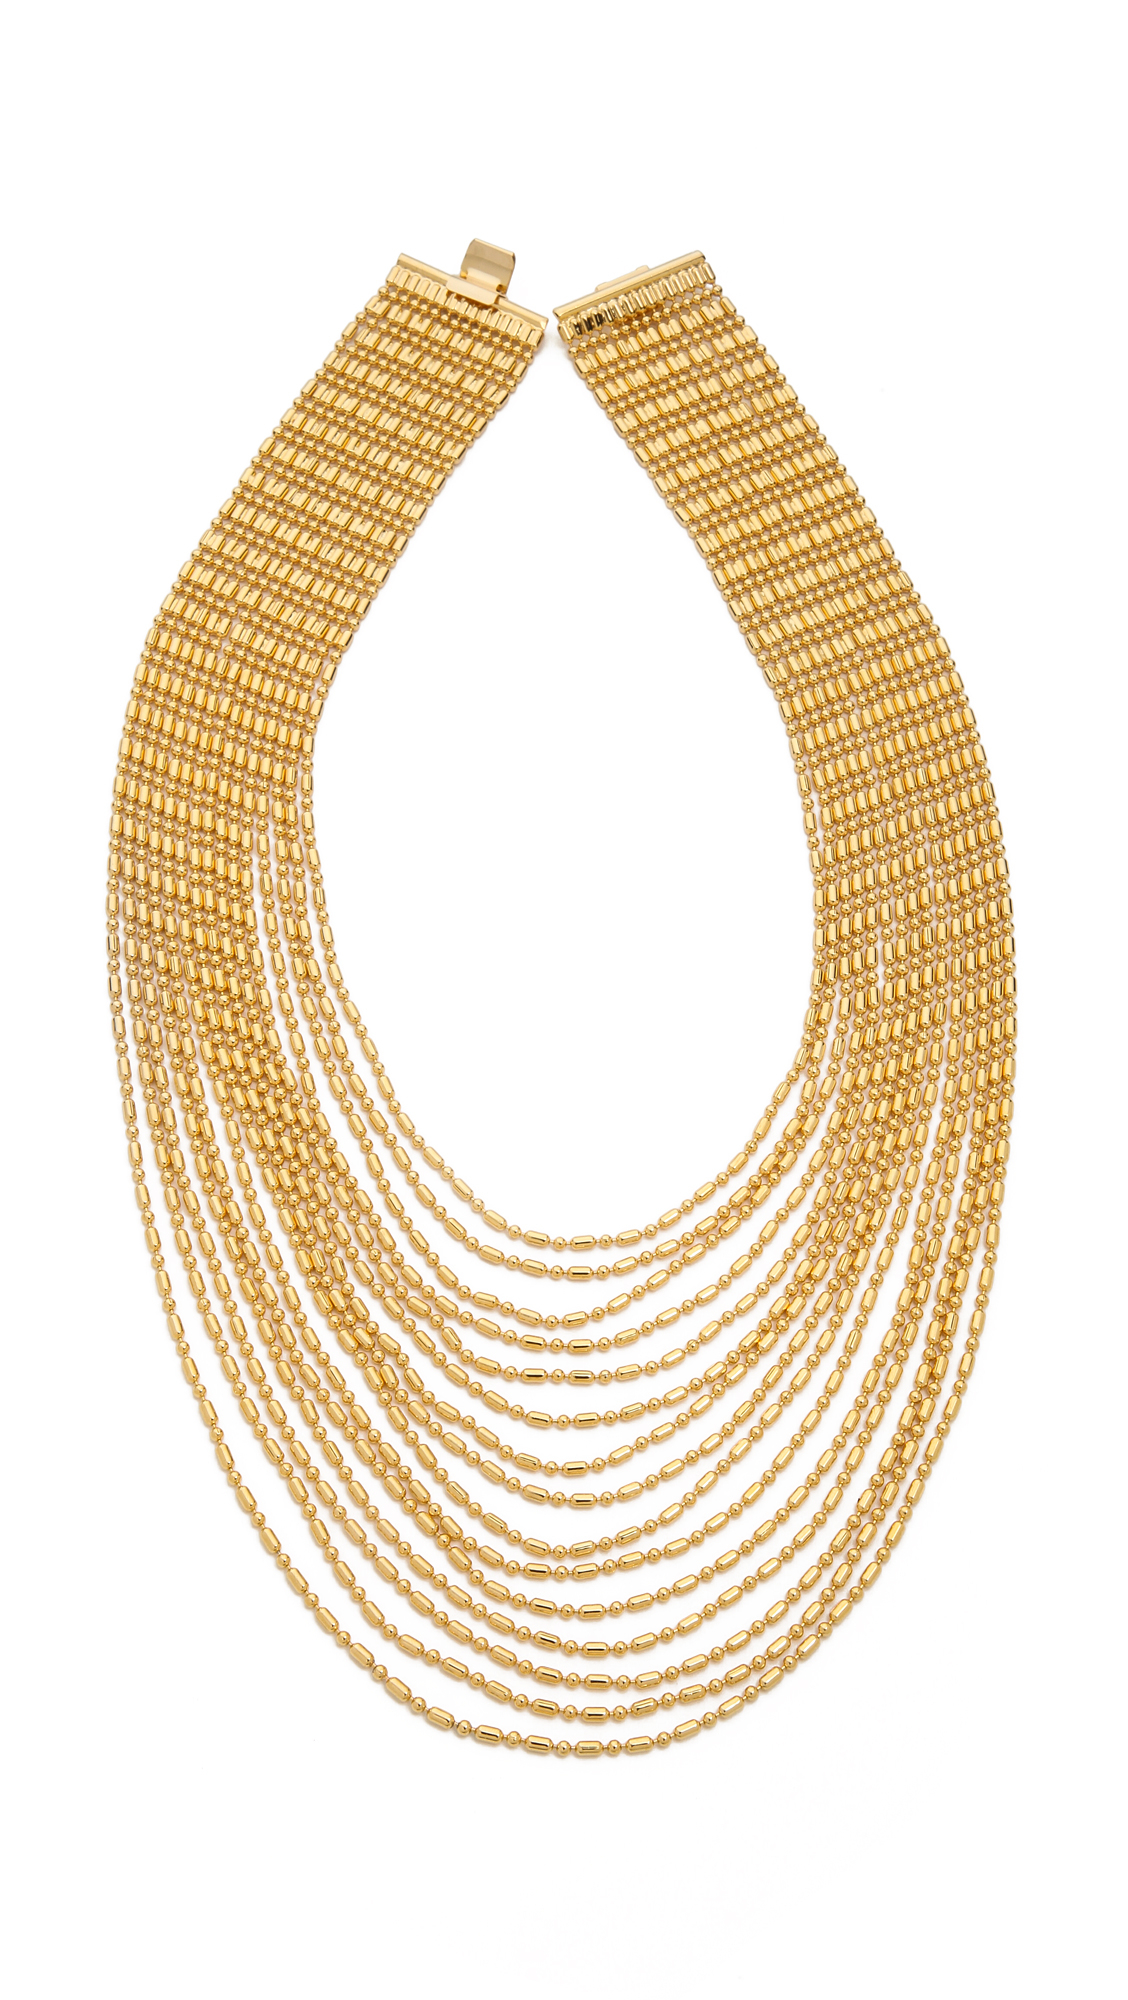 Auden Leighton Layered Chain Collar Necklace zLYgwwlZ